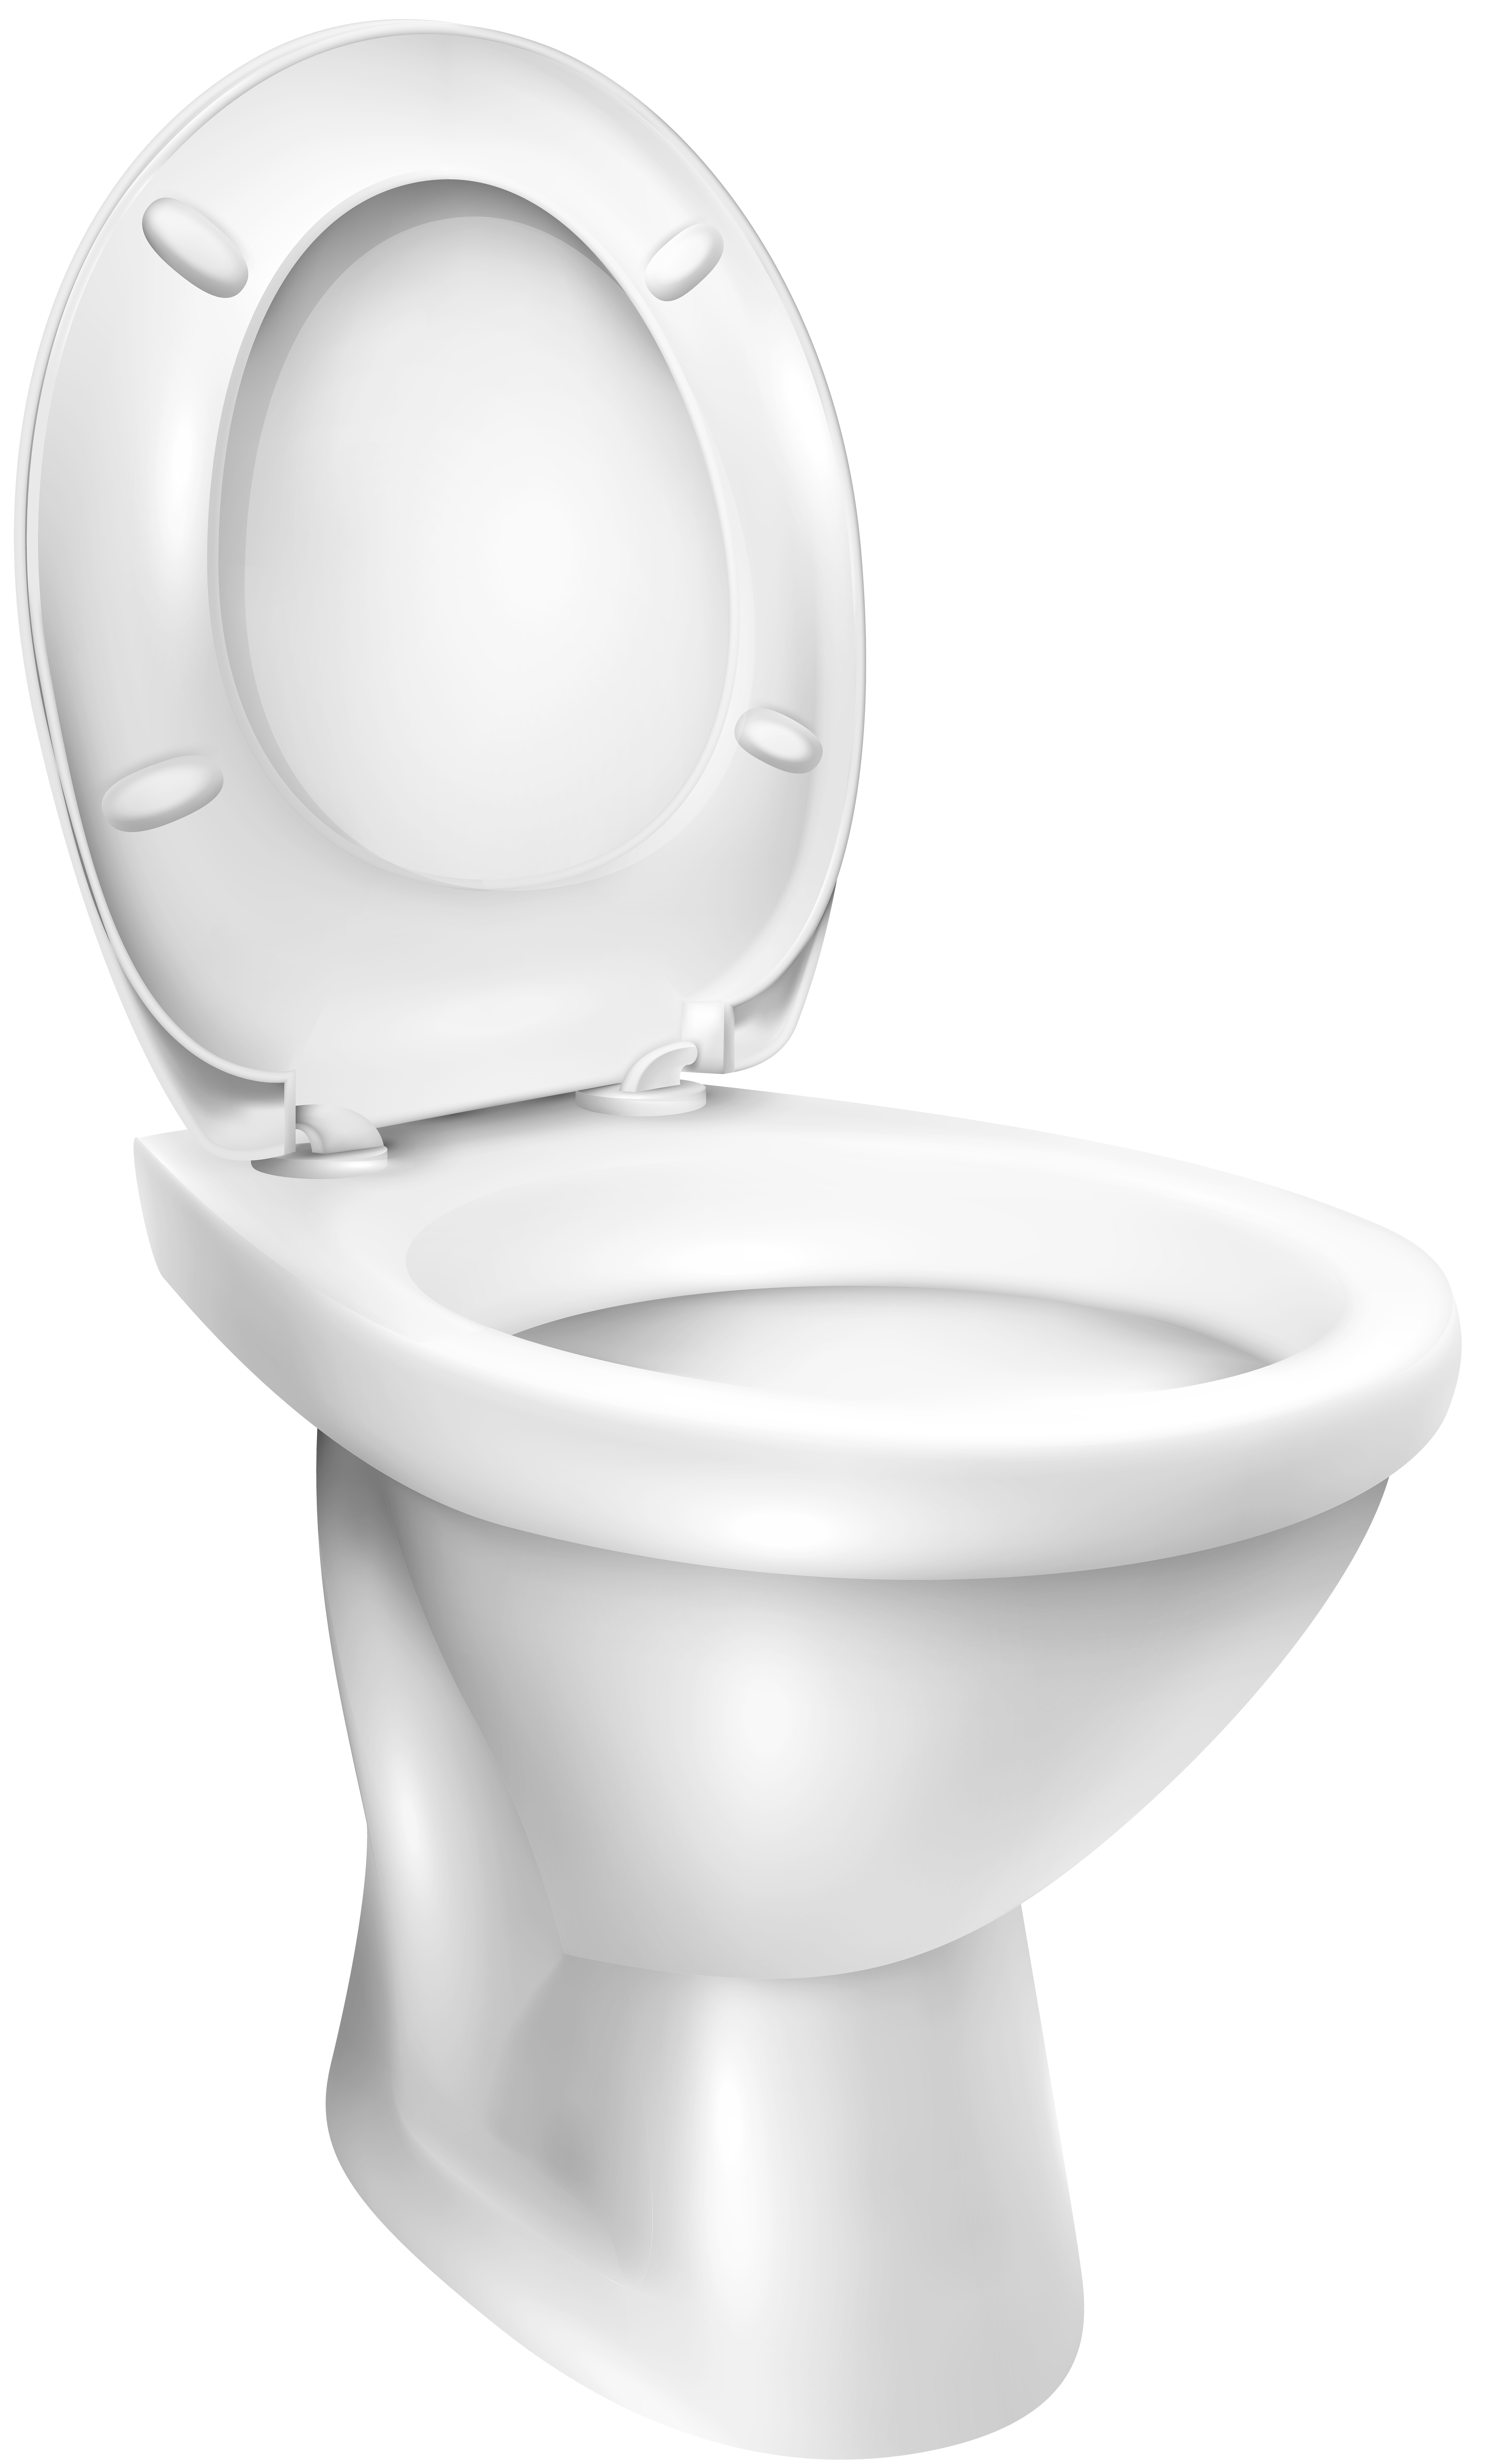 toilet seat png